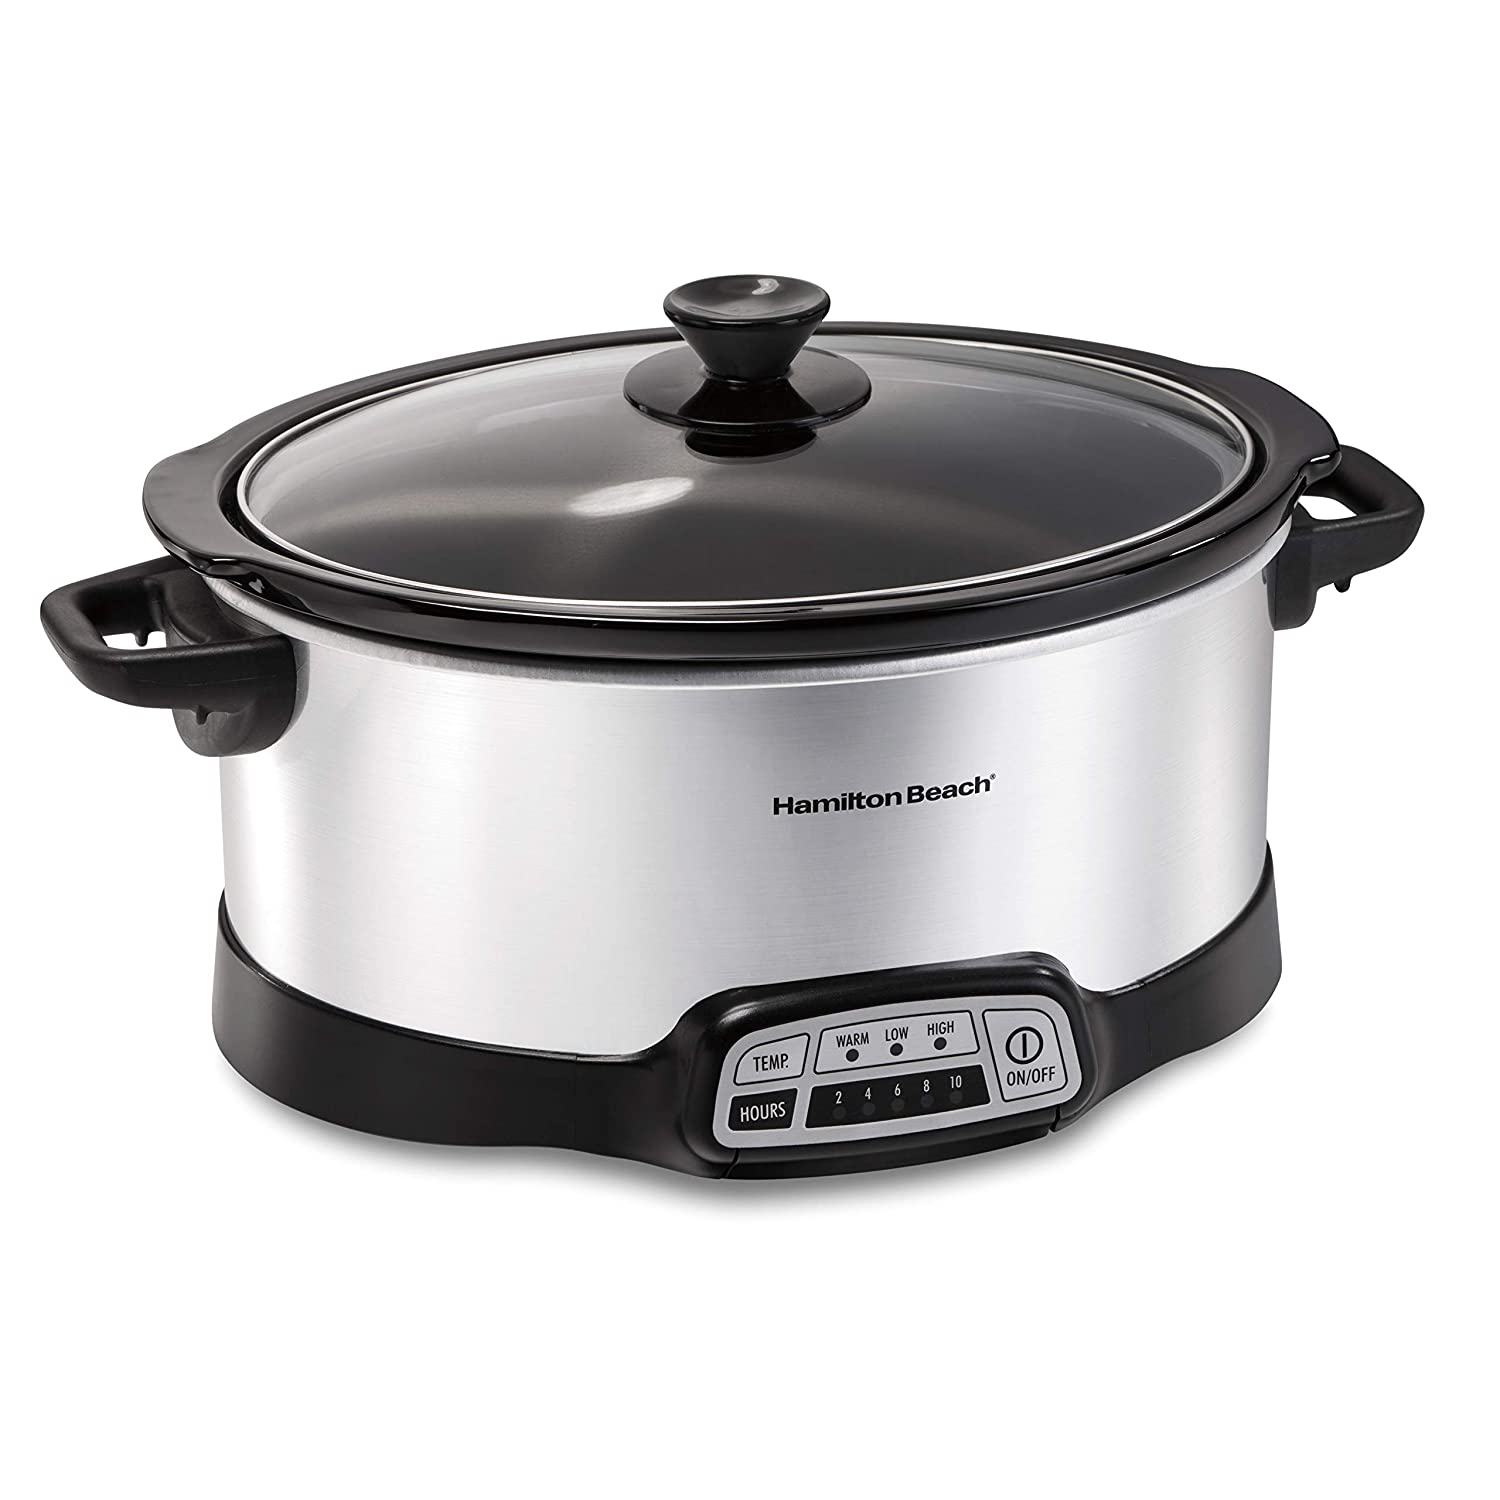 Hamilton Beach 7-Quart Programmable Slow Cooker With Flexible Easy Programming, Dishwasher-Safe Crock Lid, Silver 33473